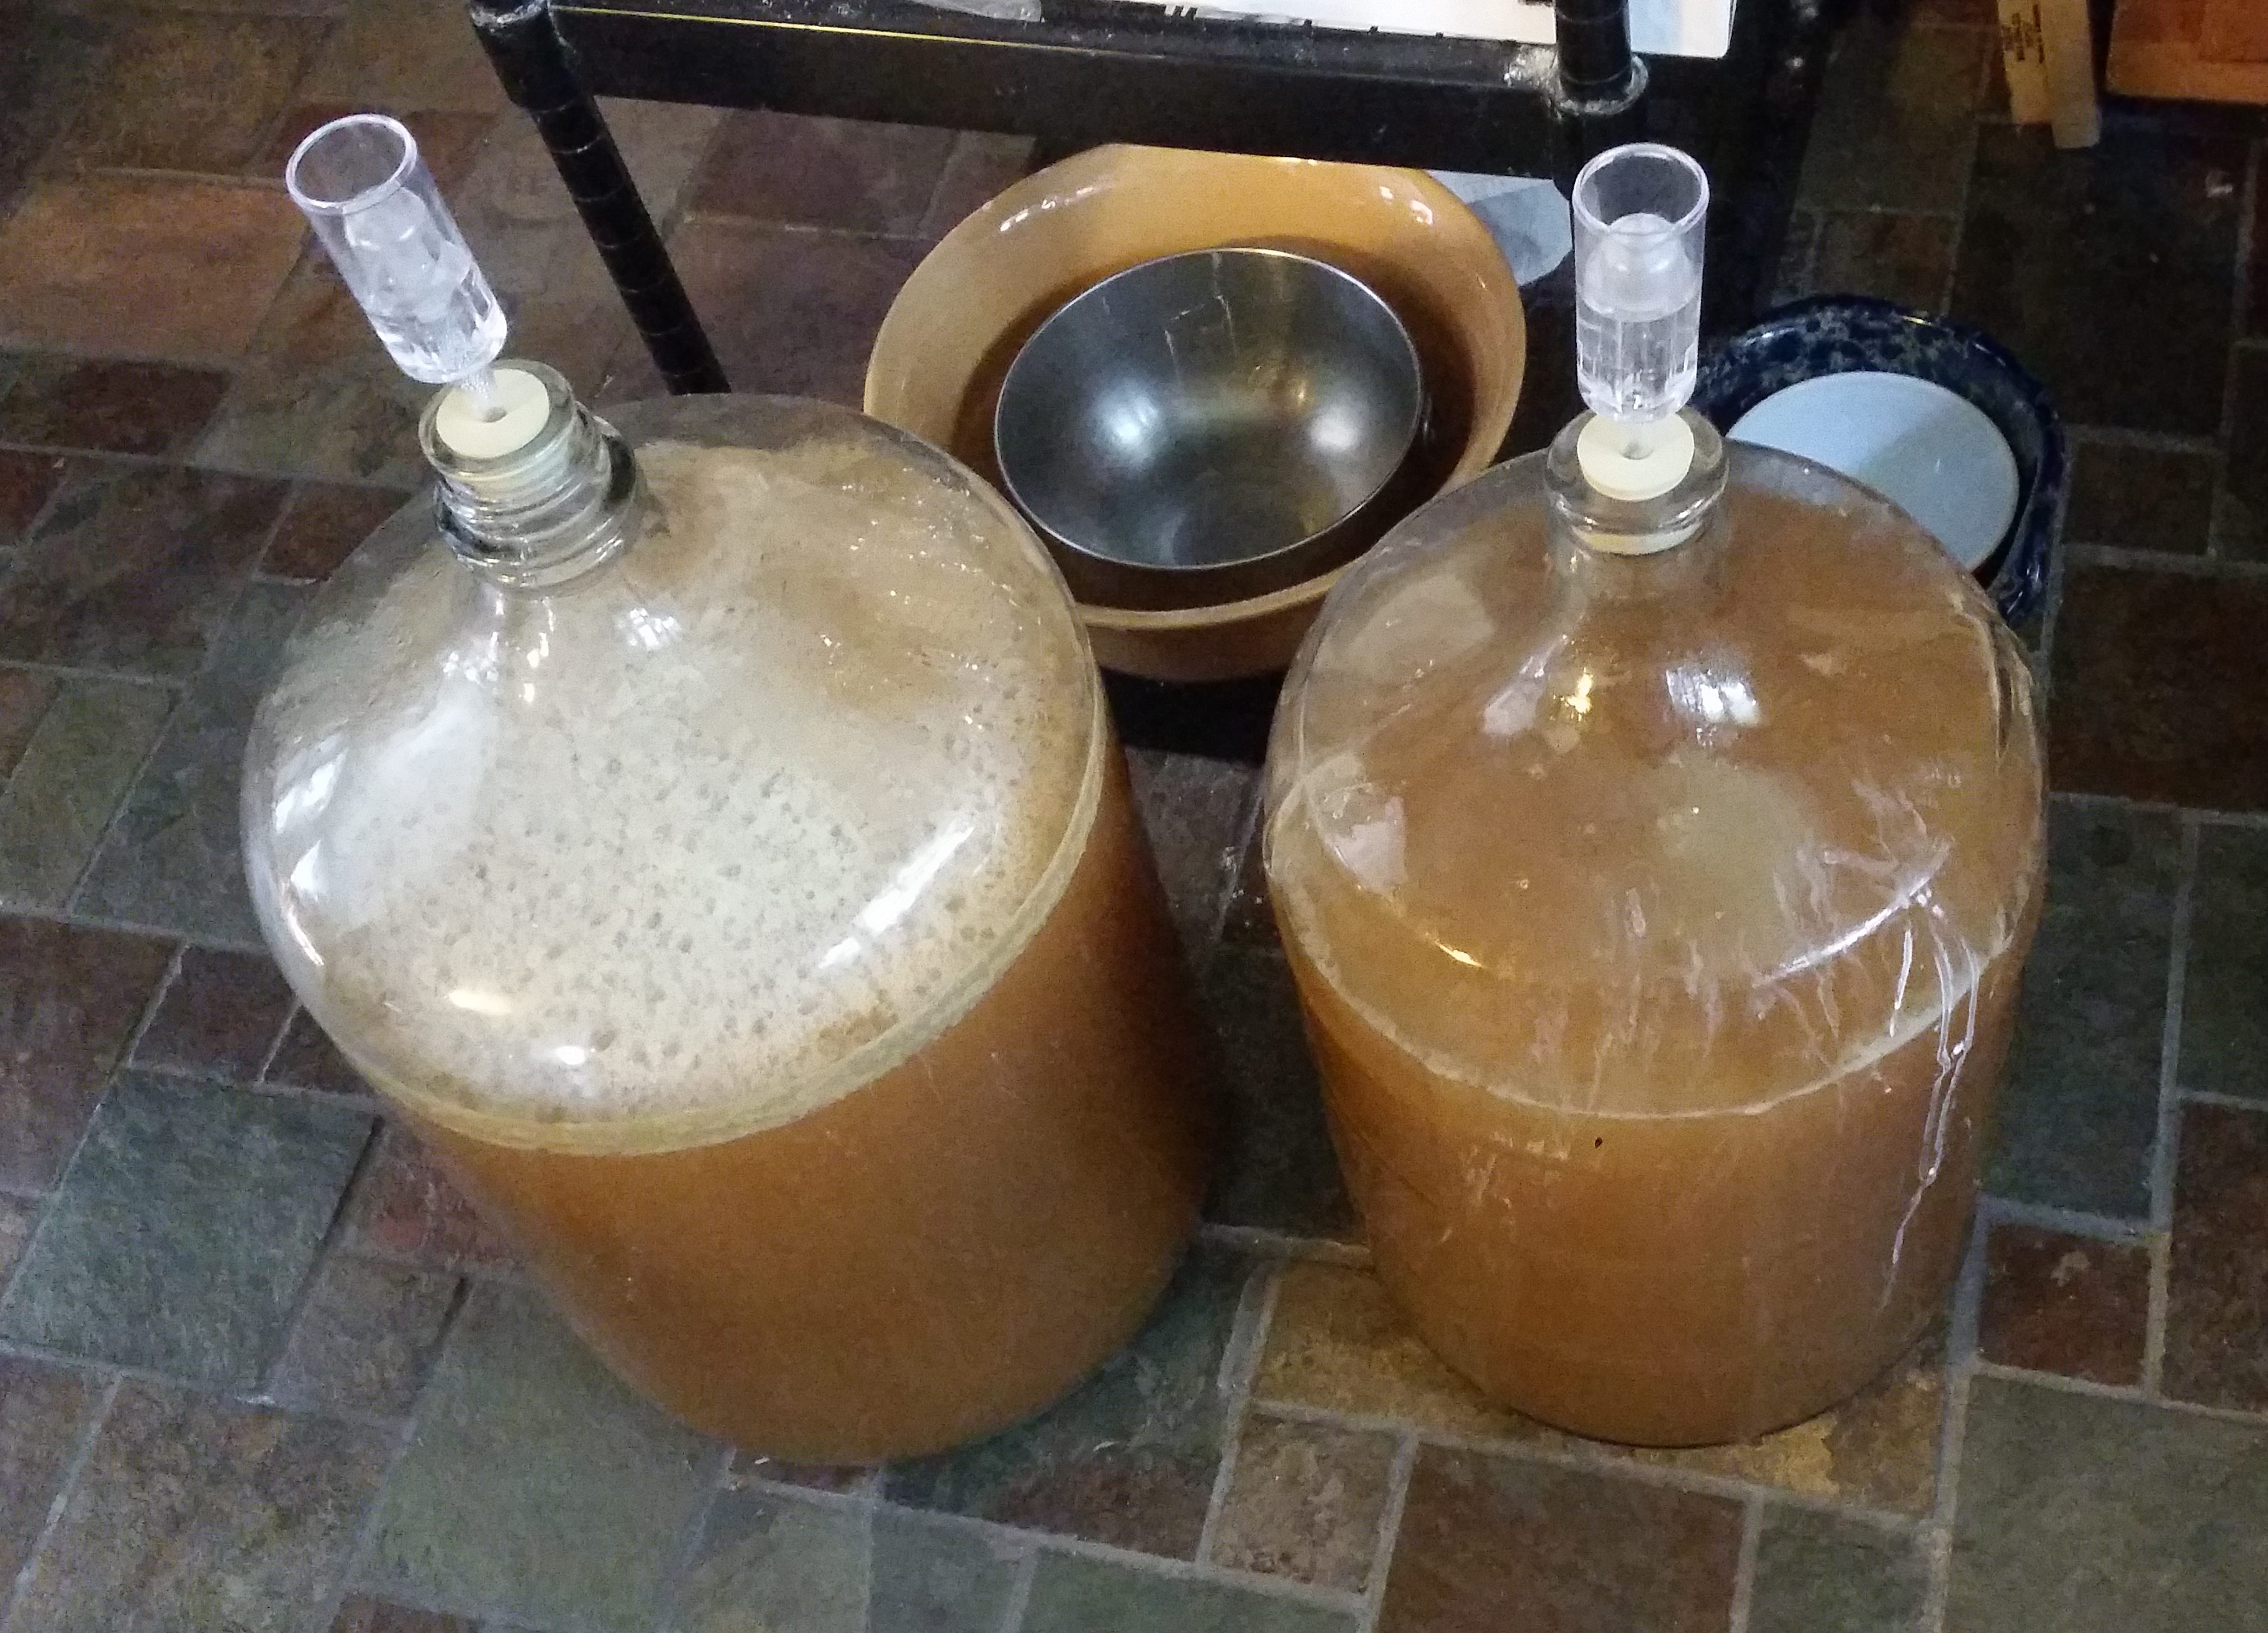 Homebrew beer ferments in jugs.